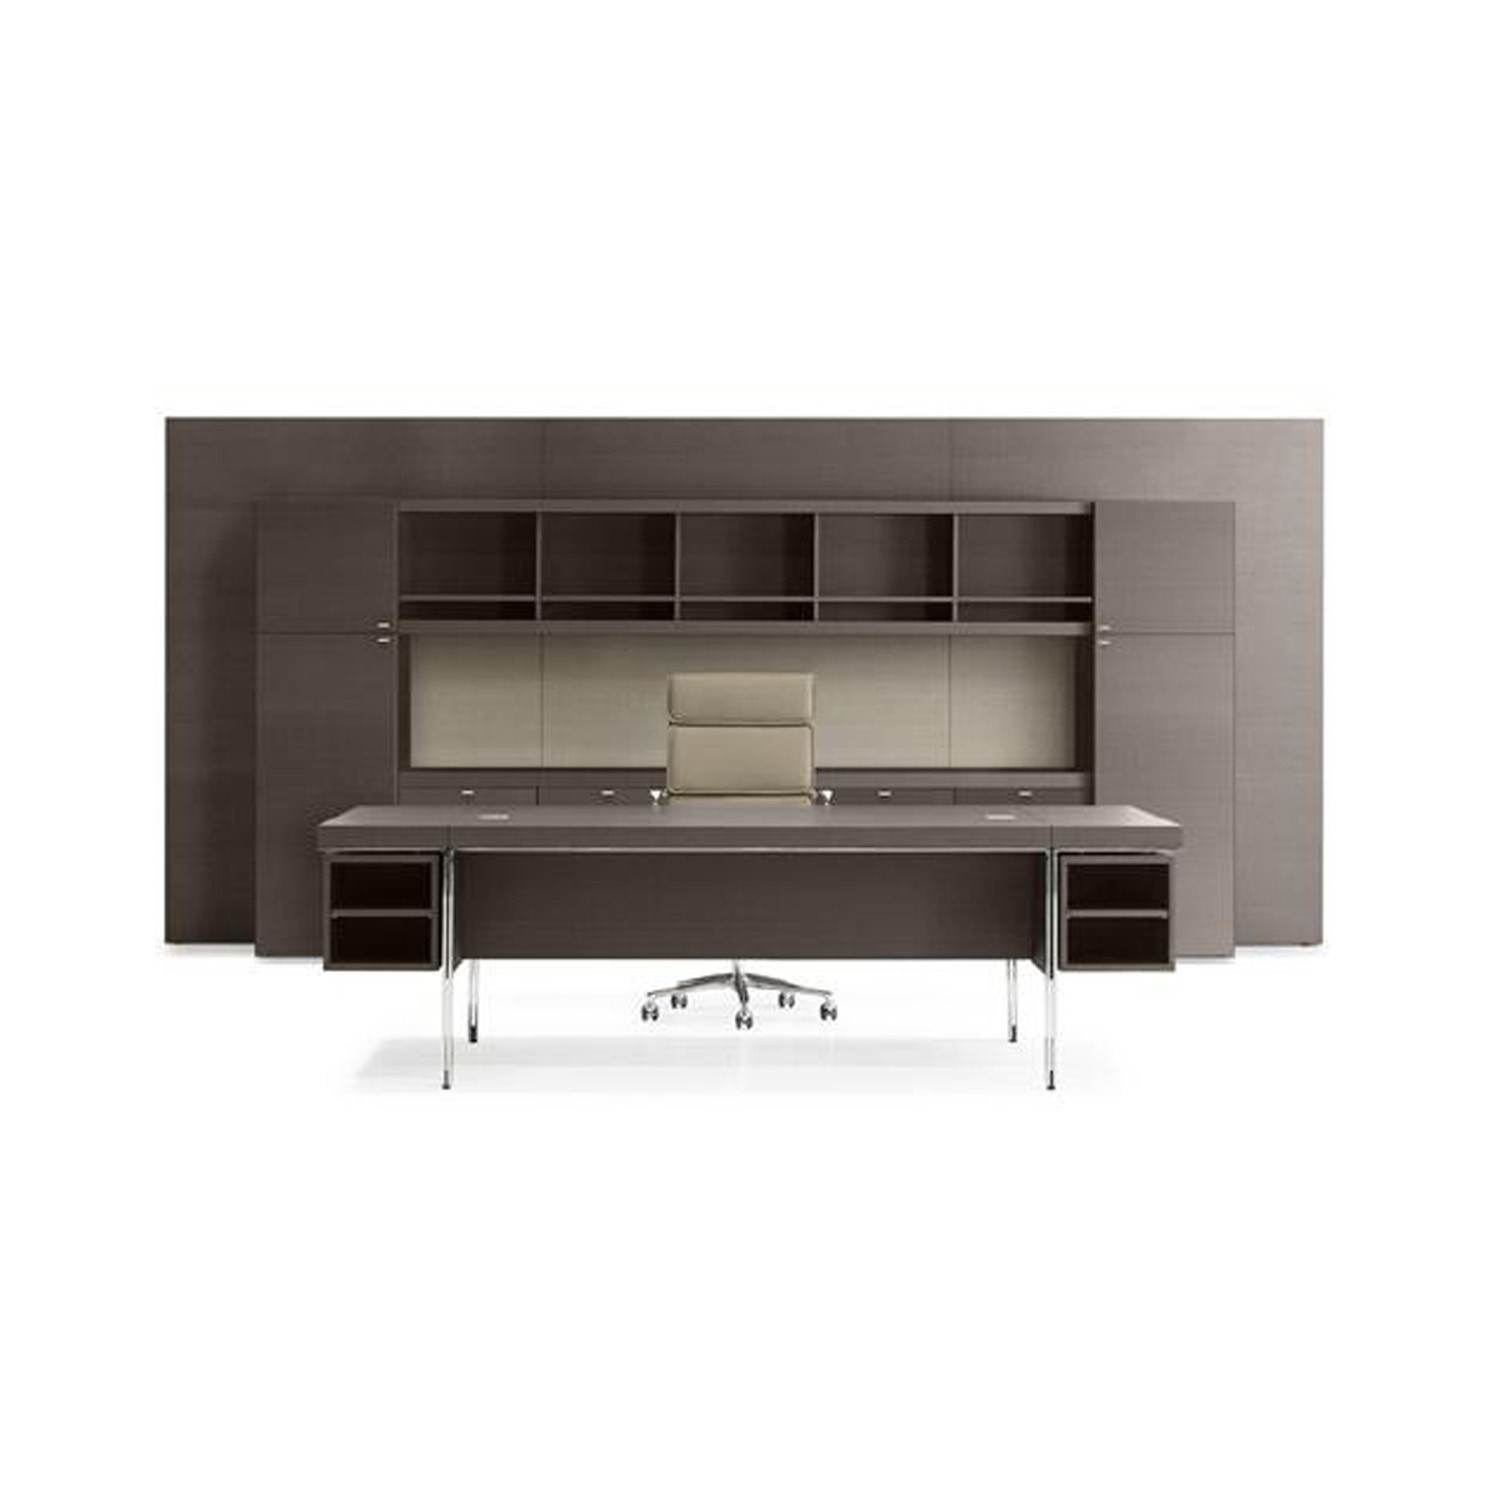 Parallel Executive Group Desk in multilaminar wood veneer